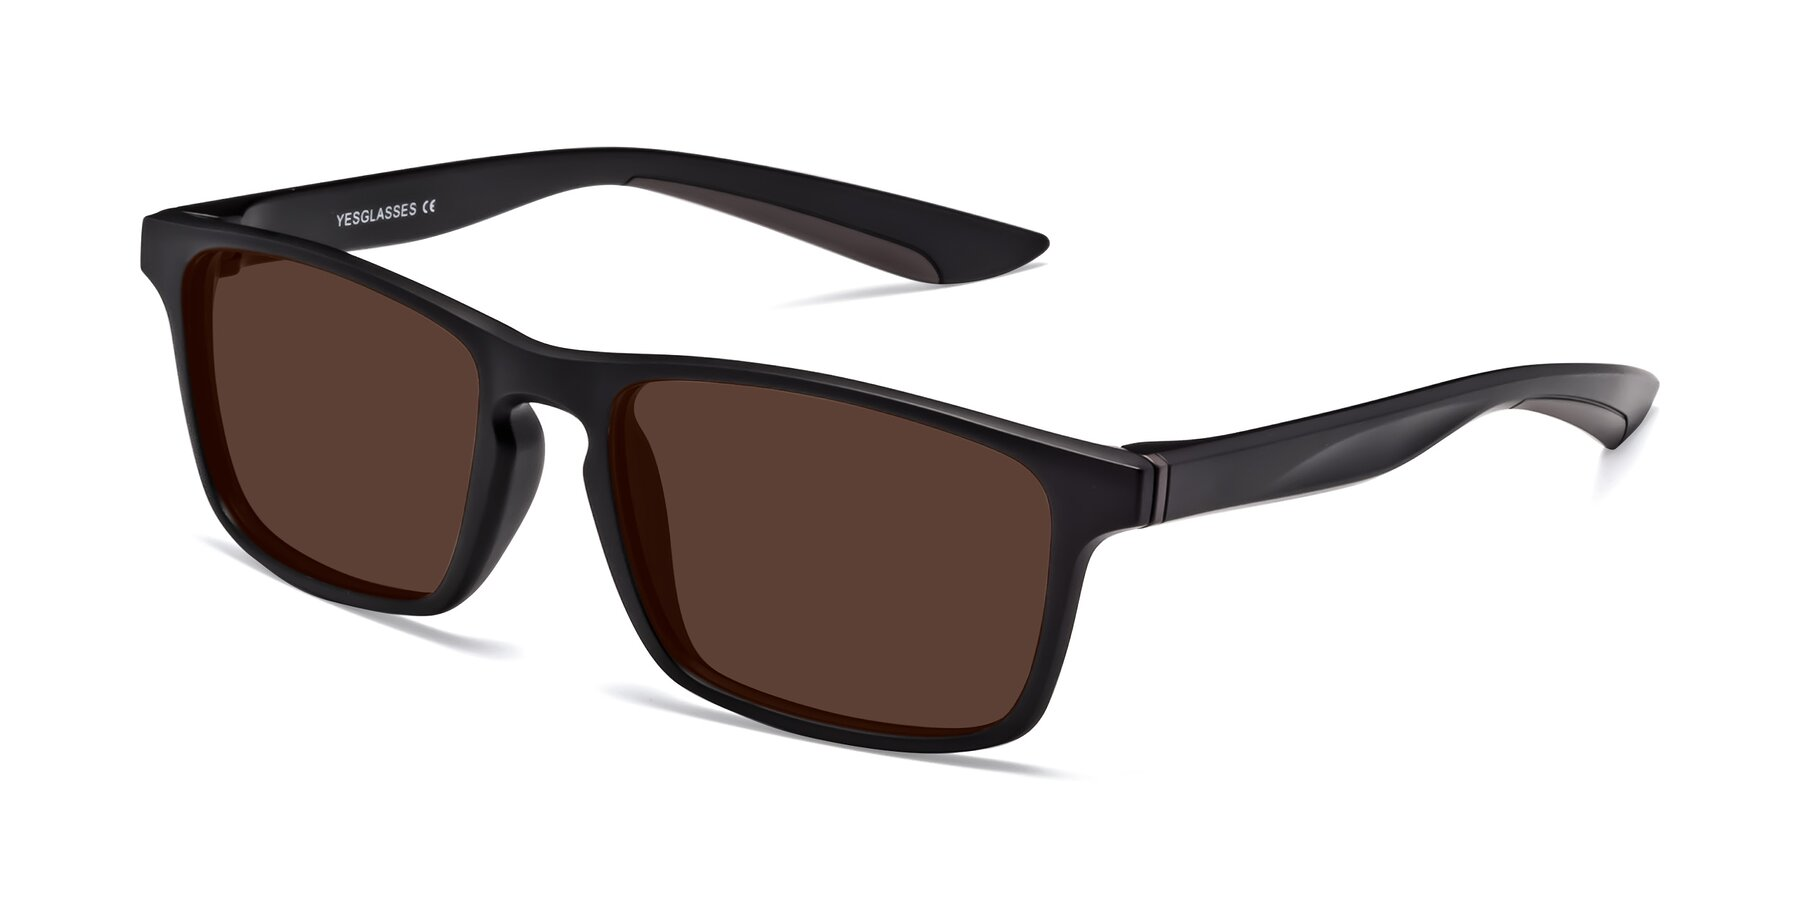 Angle of Passion in Matte Black-Coffee with Brown Tinted Lenses